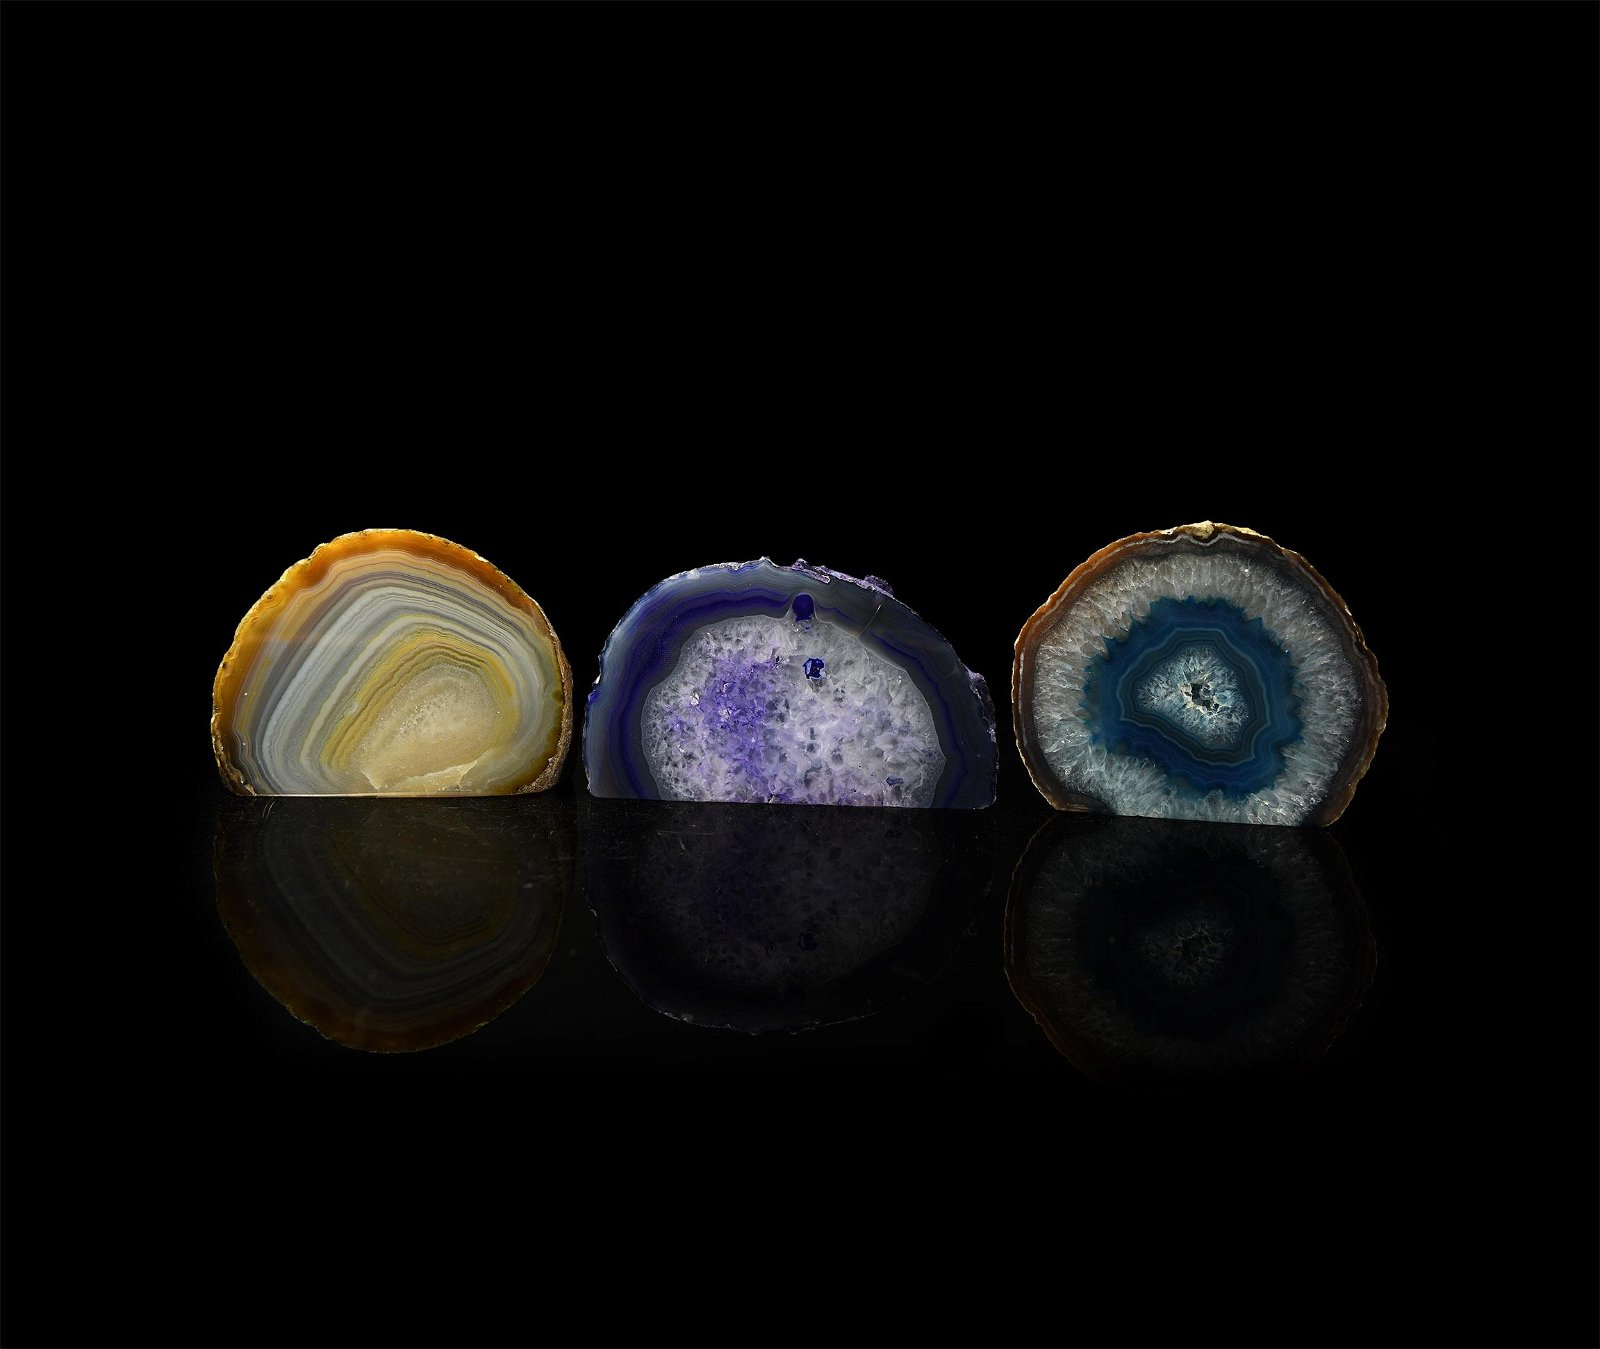 Large Cut and Polished Crystal Geode End Collection